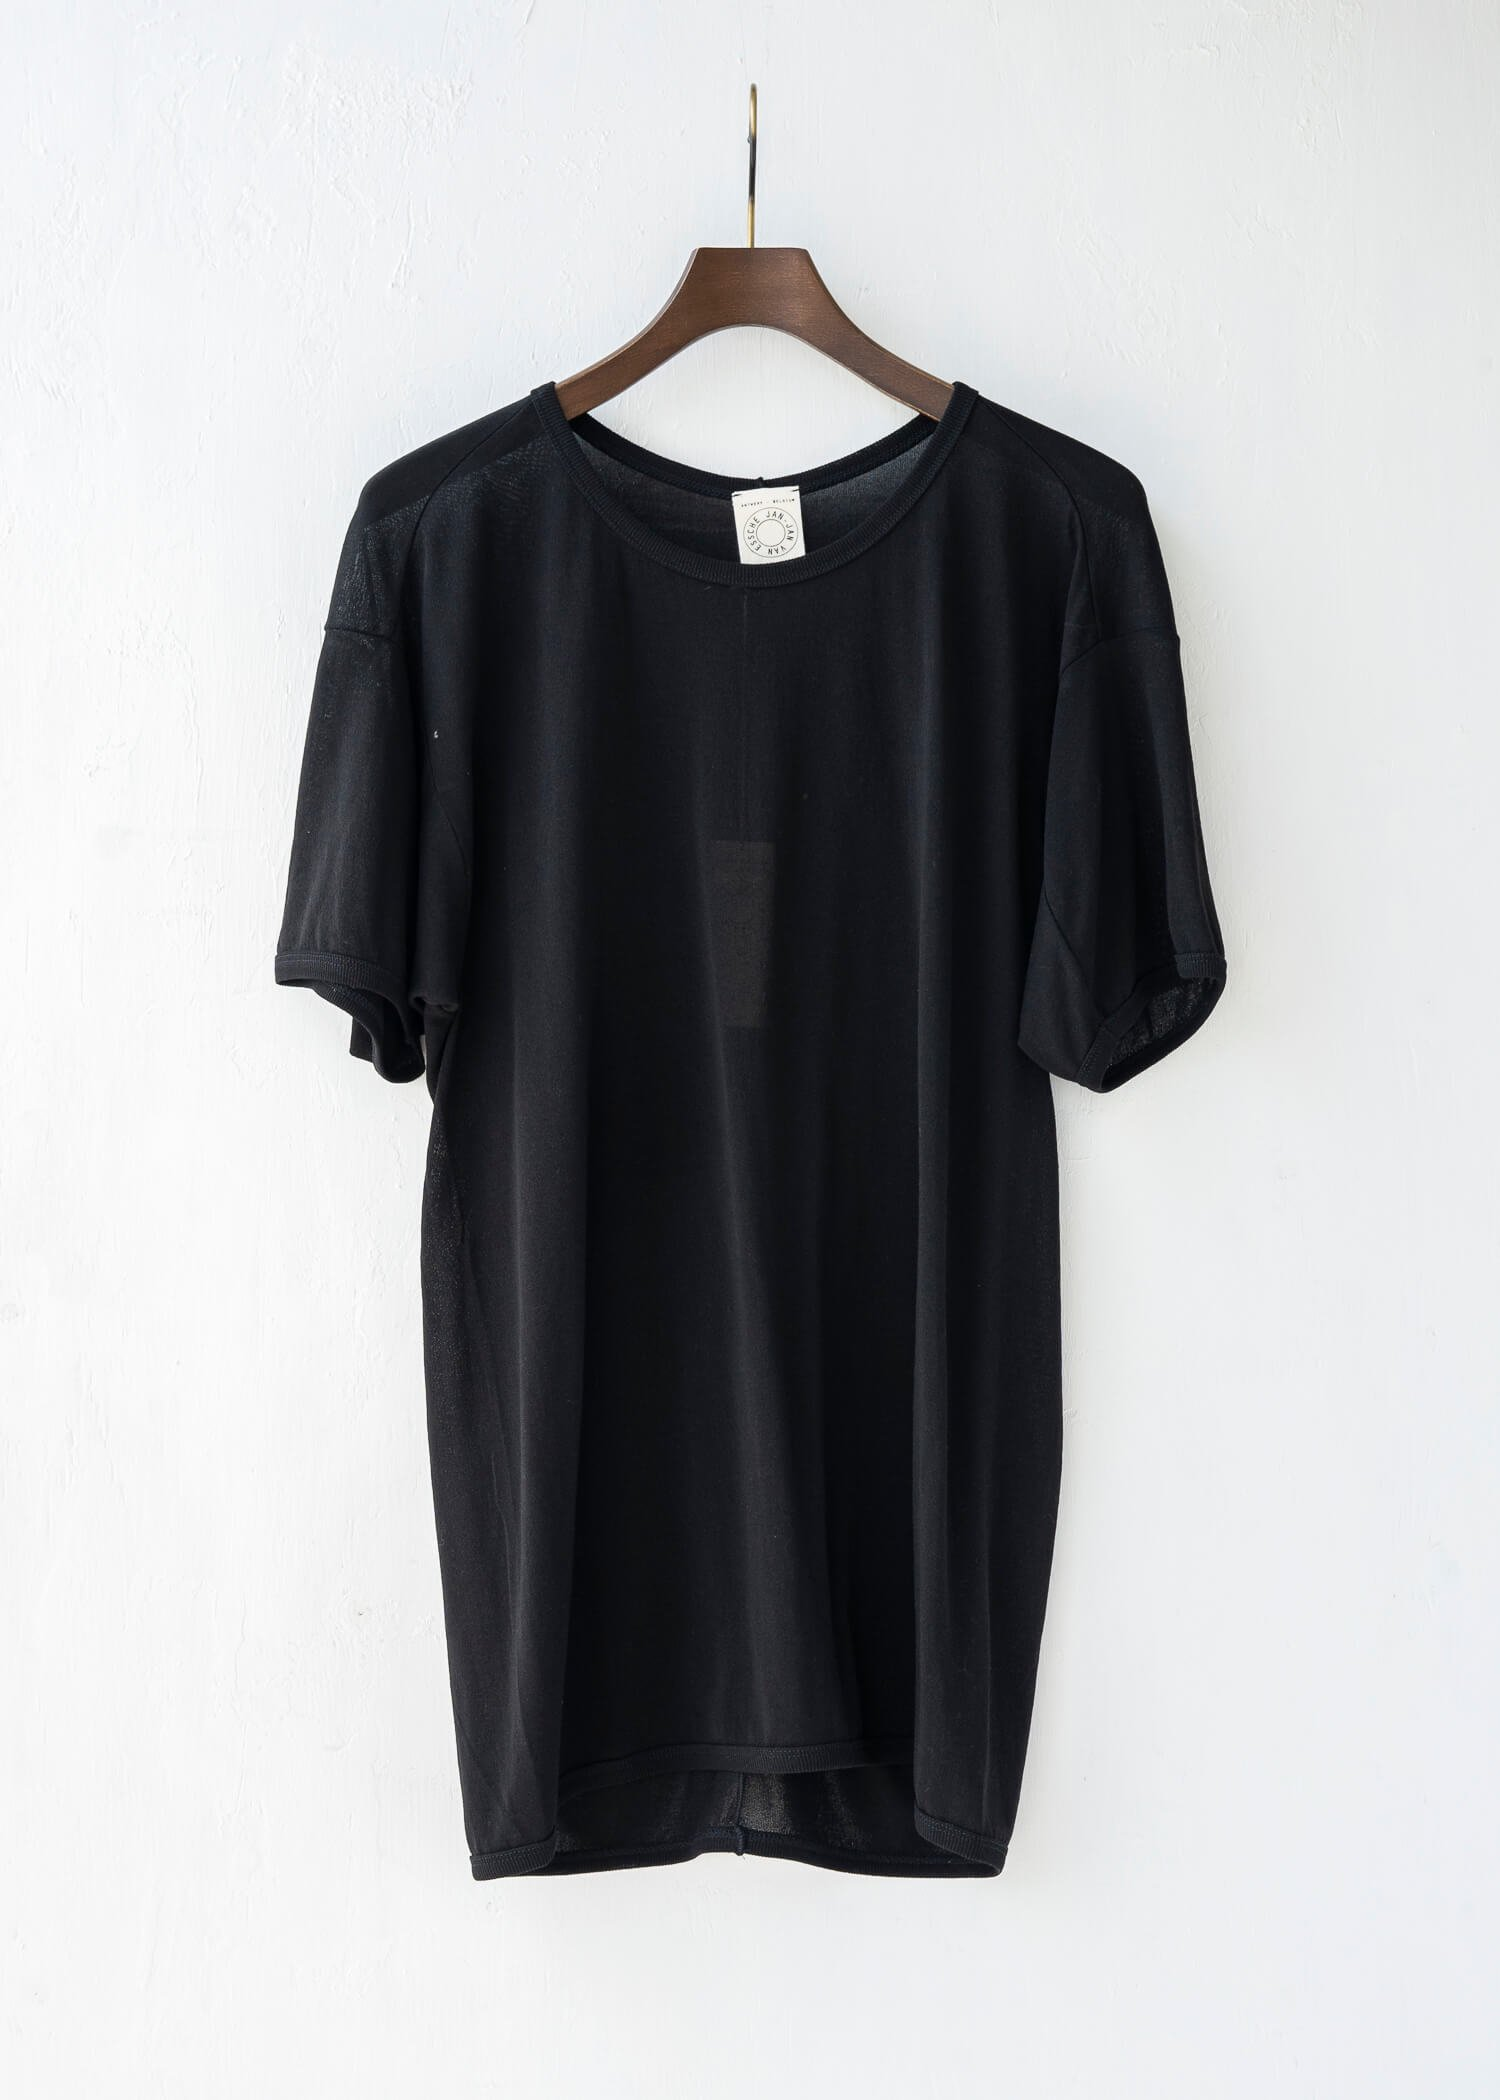 JAN-JAN VAN ESSCHE / TEE#59 REGULAR FIT T-SHIRT BLACK WA/CO JERSEY